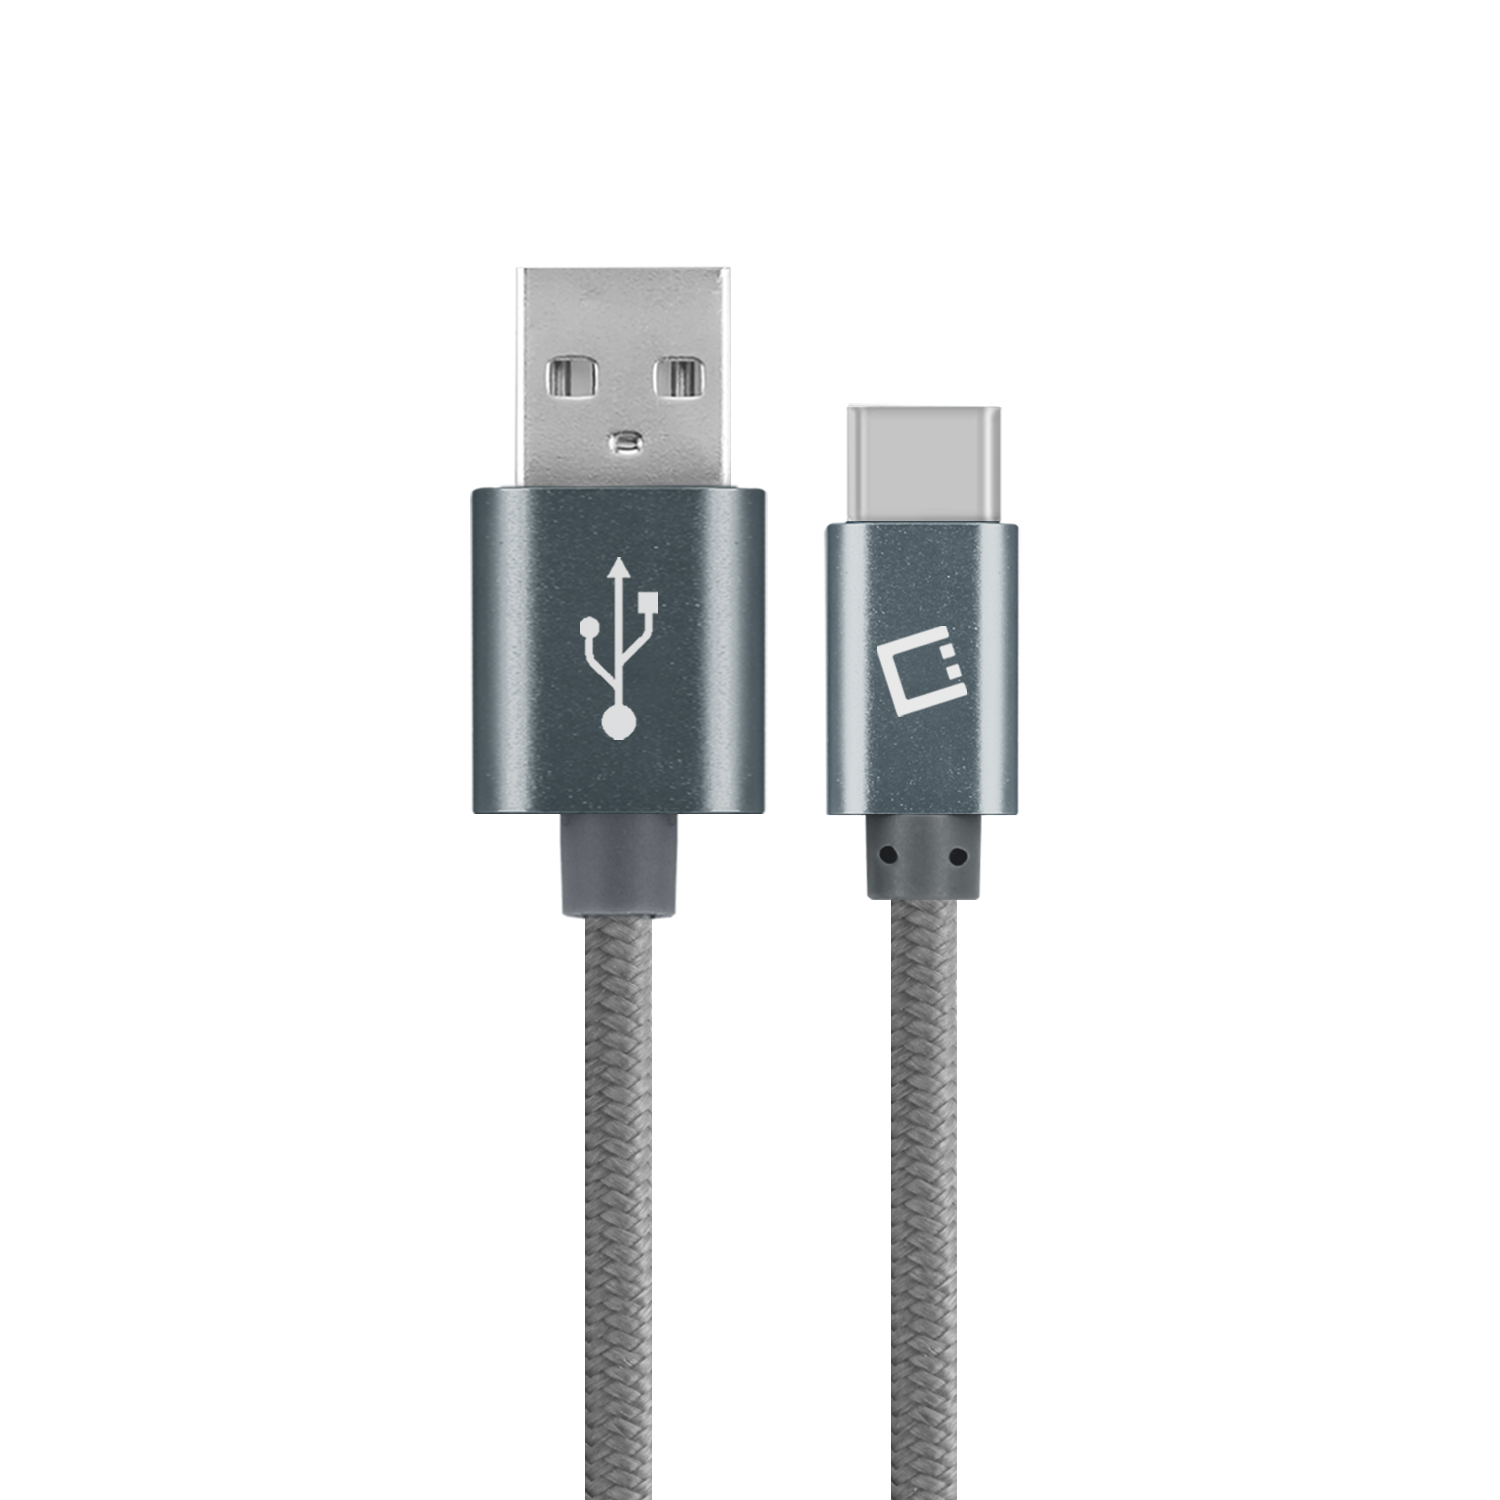 LG Stylo 5 USB Type-C To Type-A Braided Data Power Cable Grey 10ft Braided